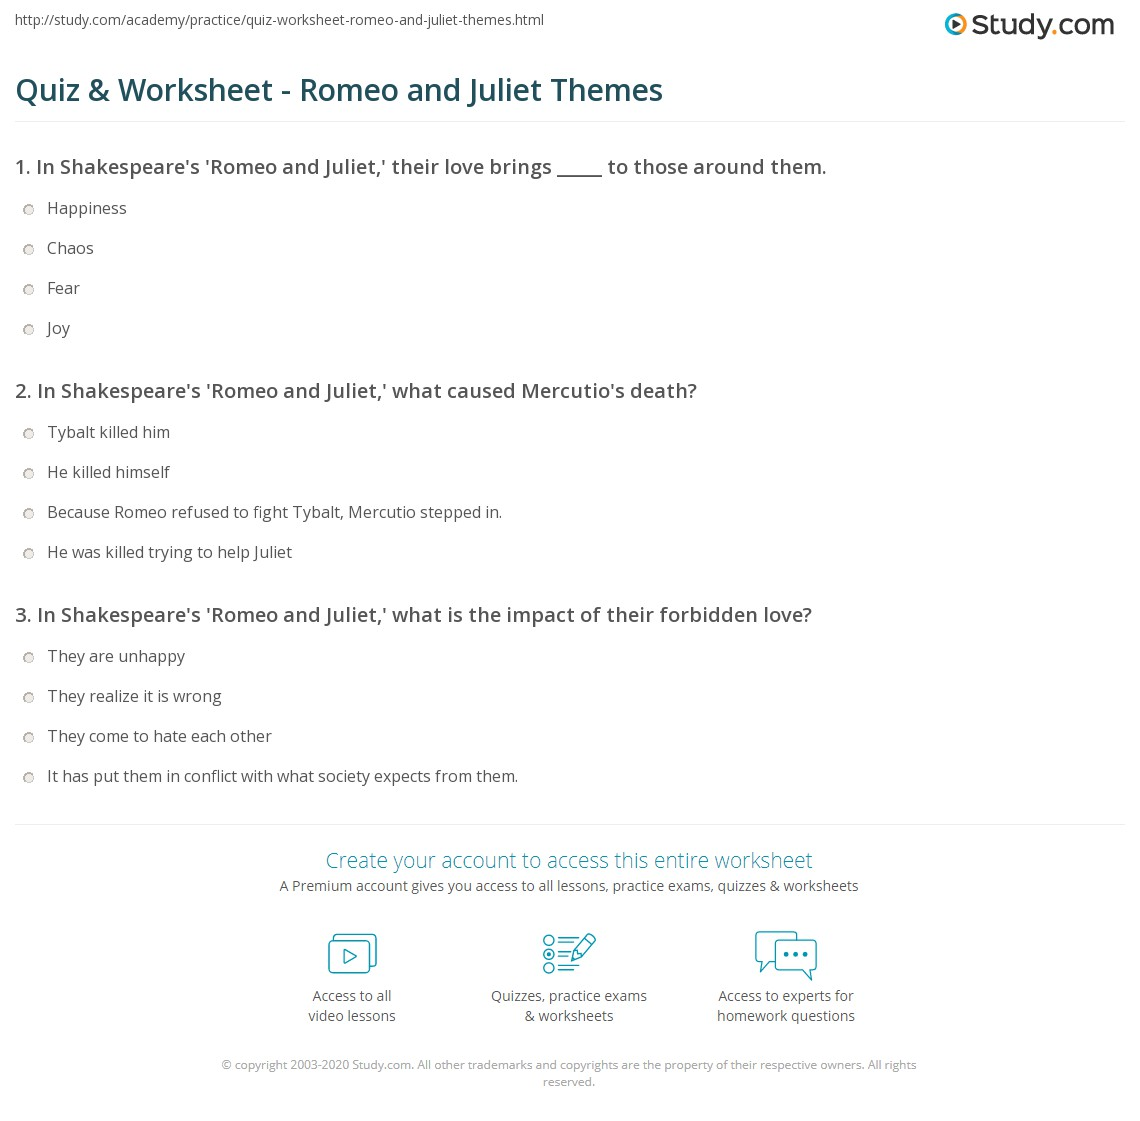 quiz worksheet romeo and juliet themes com print themes in romeo and juliet worksheet